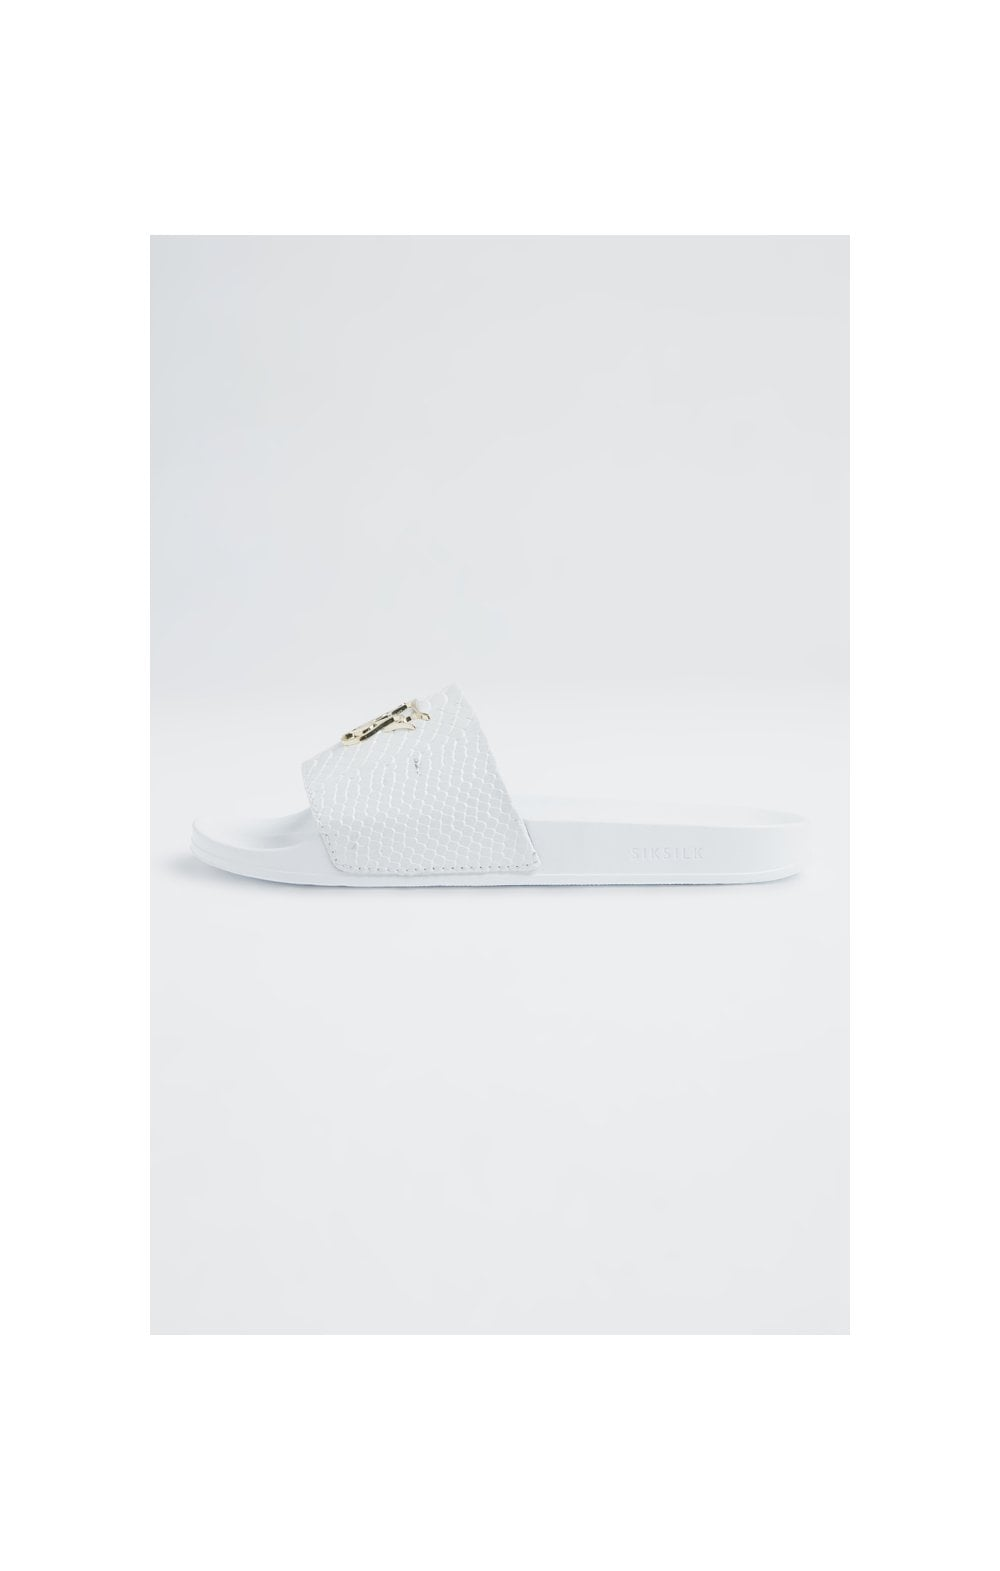 SikSilk Roma Lux Anaconda Slides – White